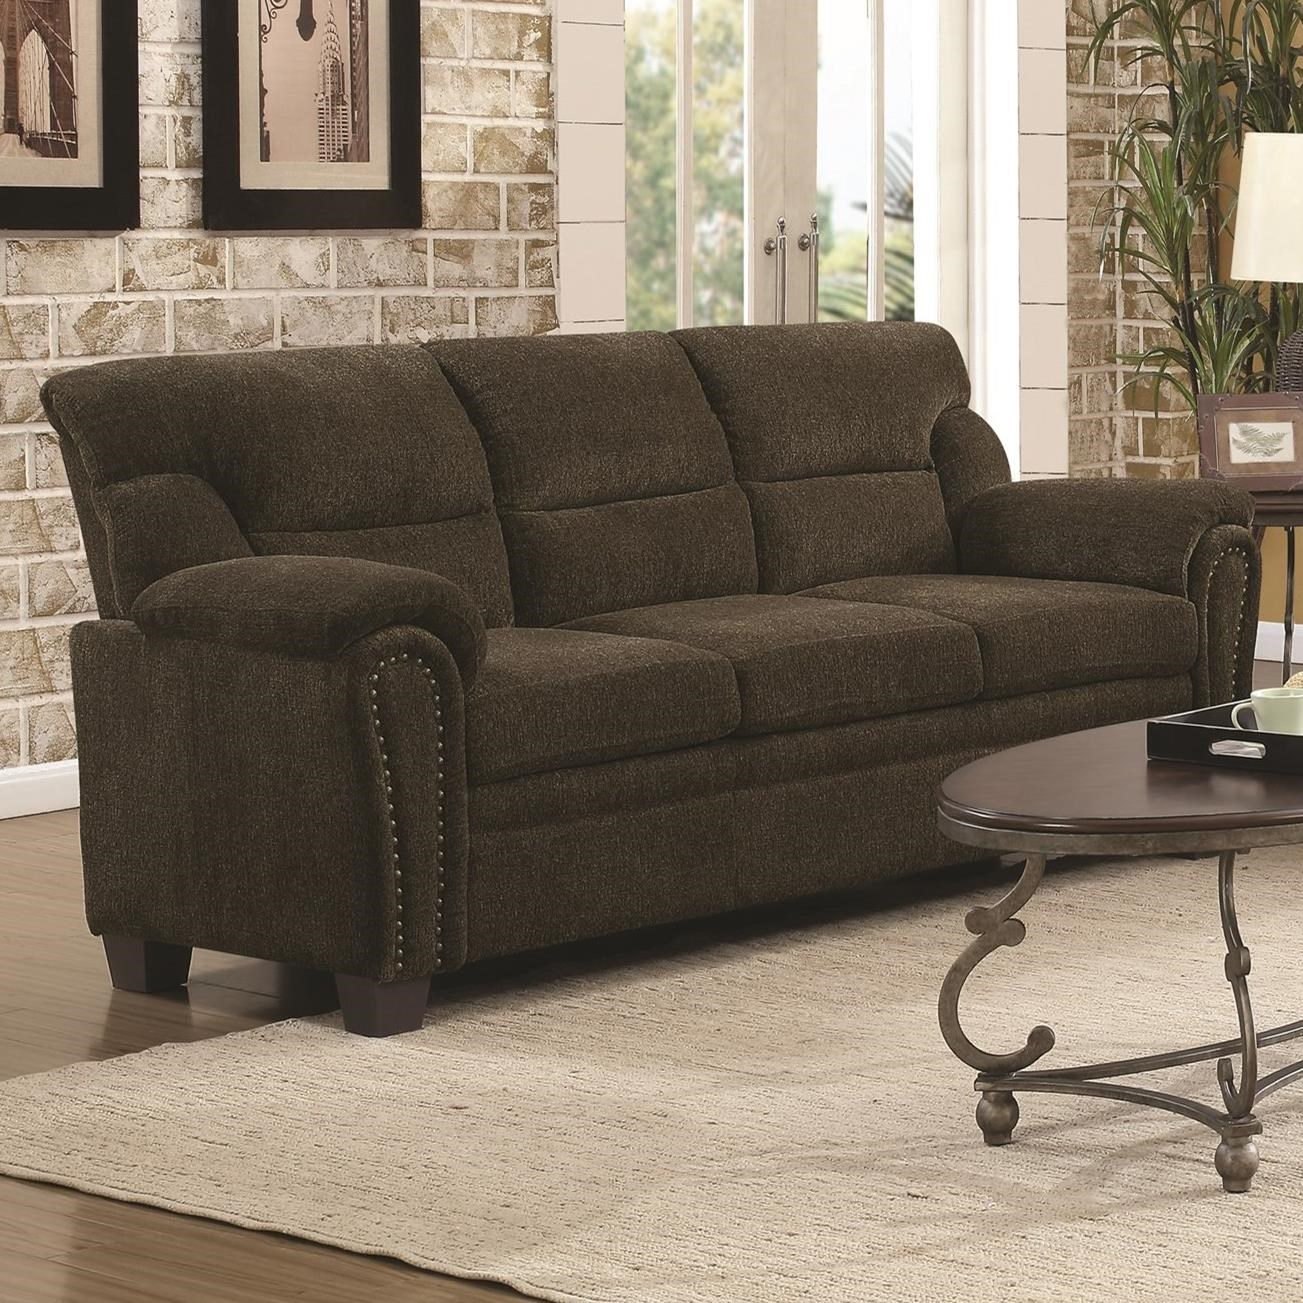 Clemintine by Coaster Sofa by Coaster at Northeast Factory Direct